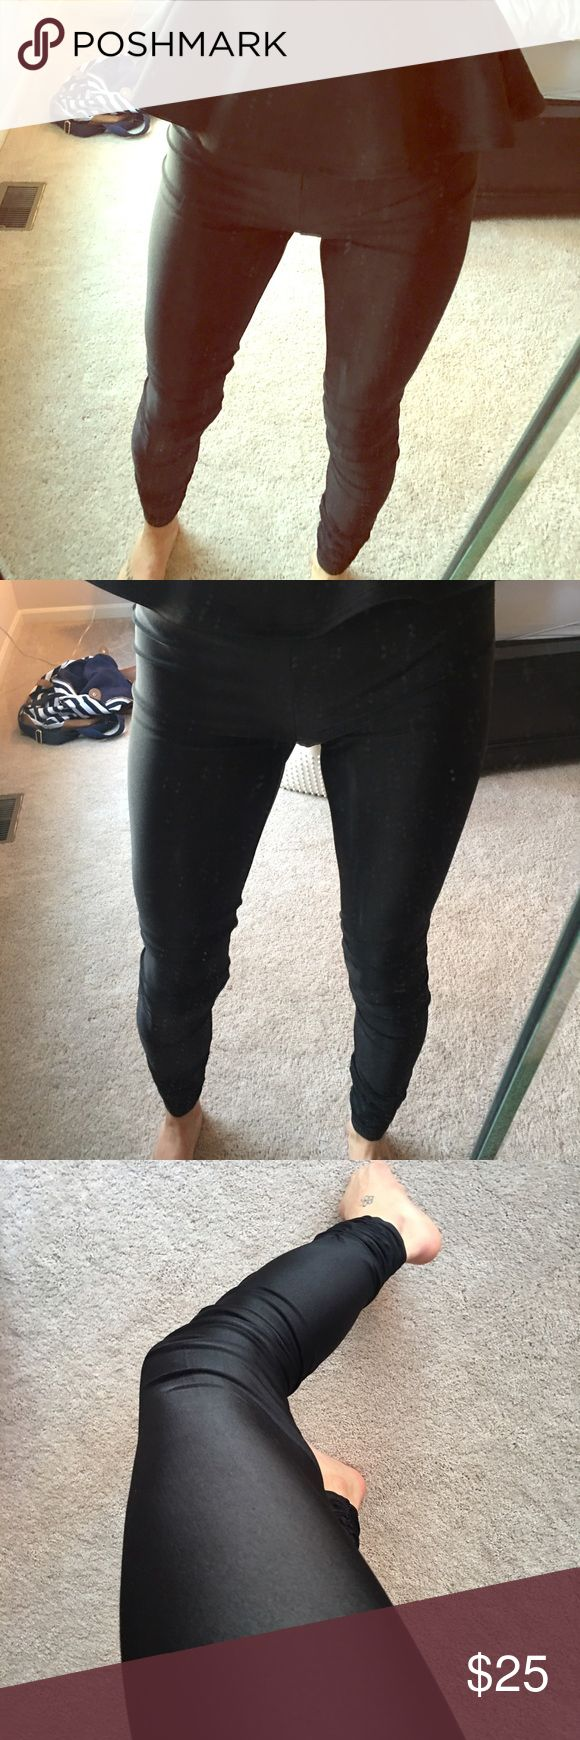 AX stretch leggings AX stretch leggings. Little shiny look but sexy! Just too big on me 😬💔 awesome great condition A/X Armani Exchange Pants Leggings